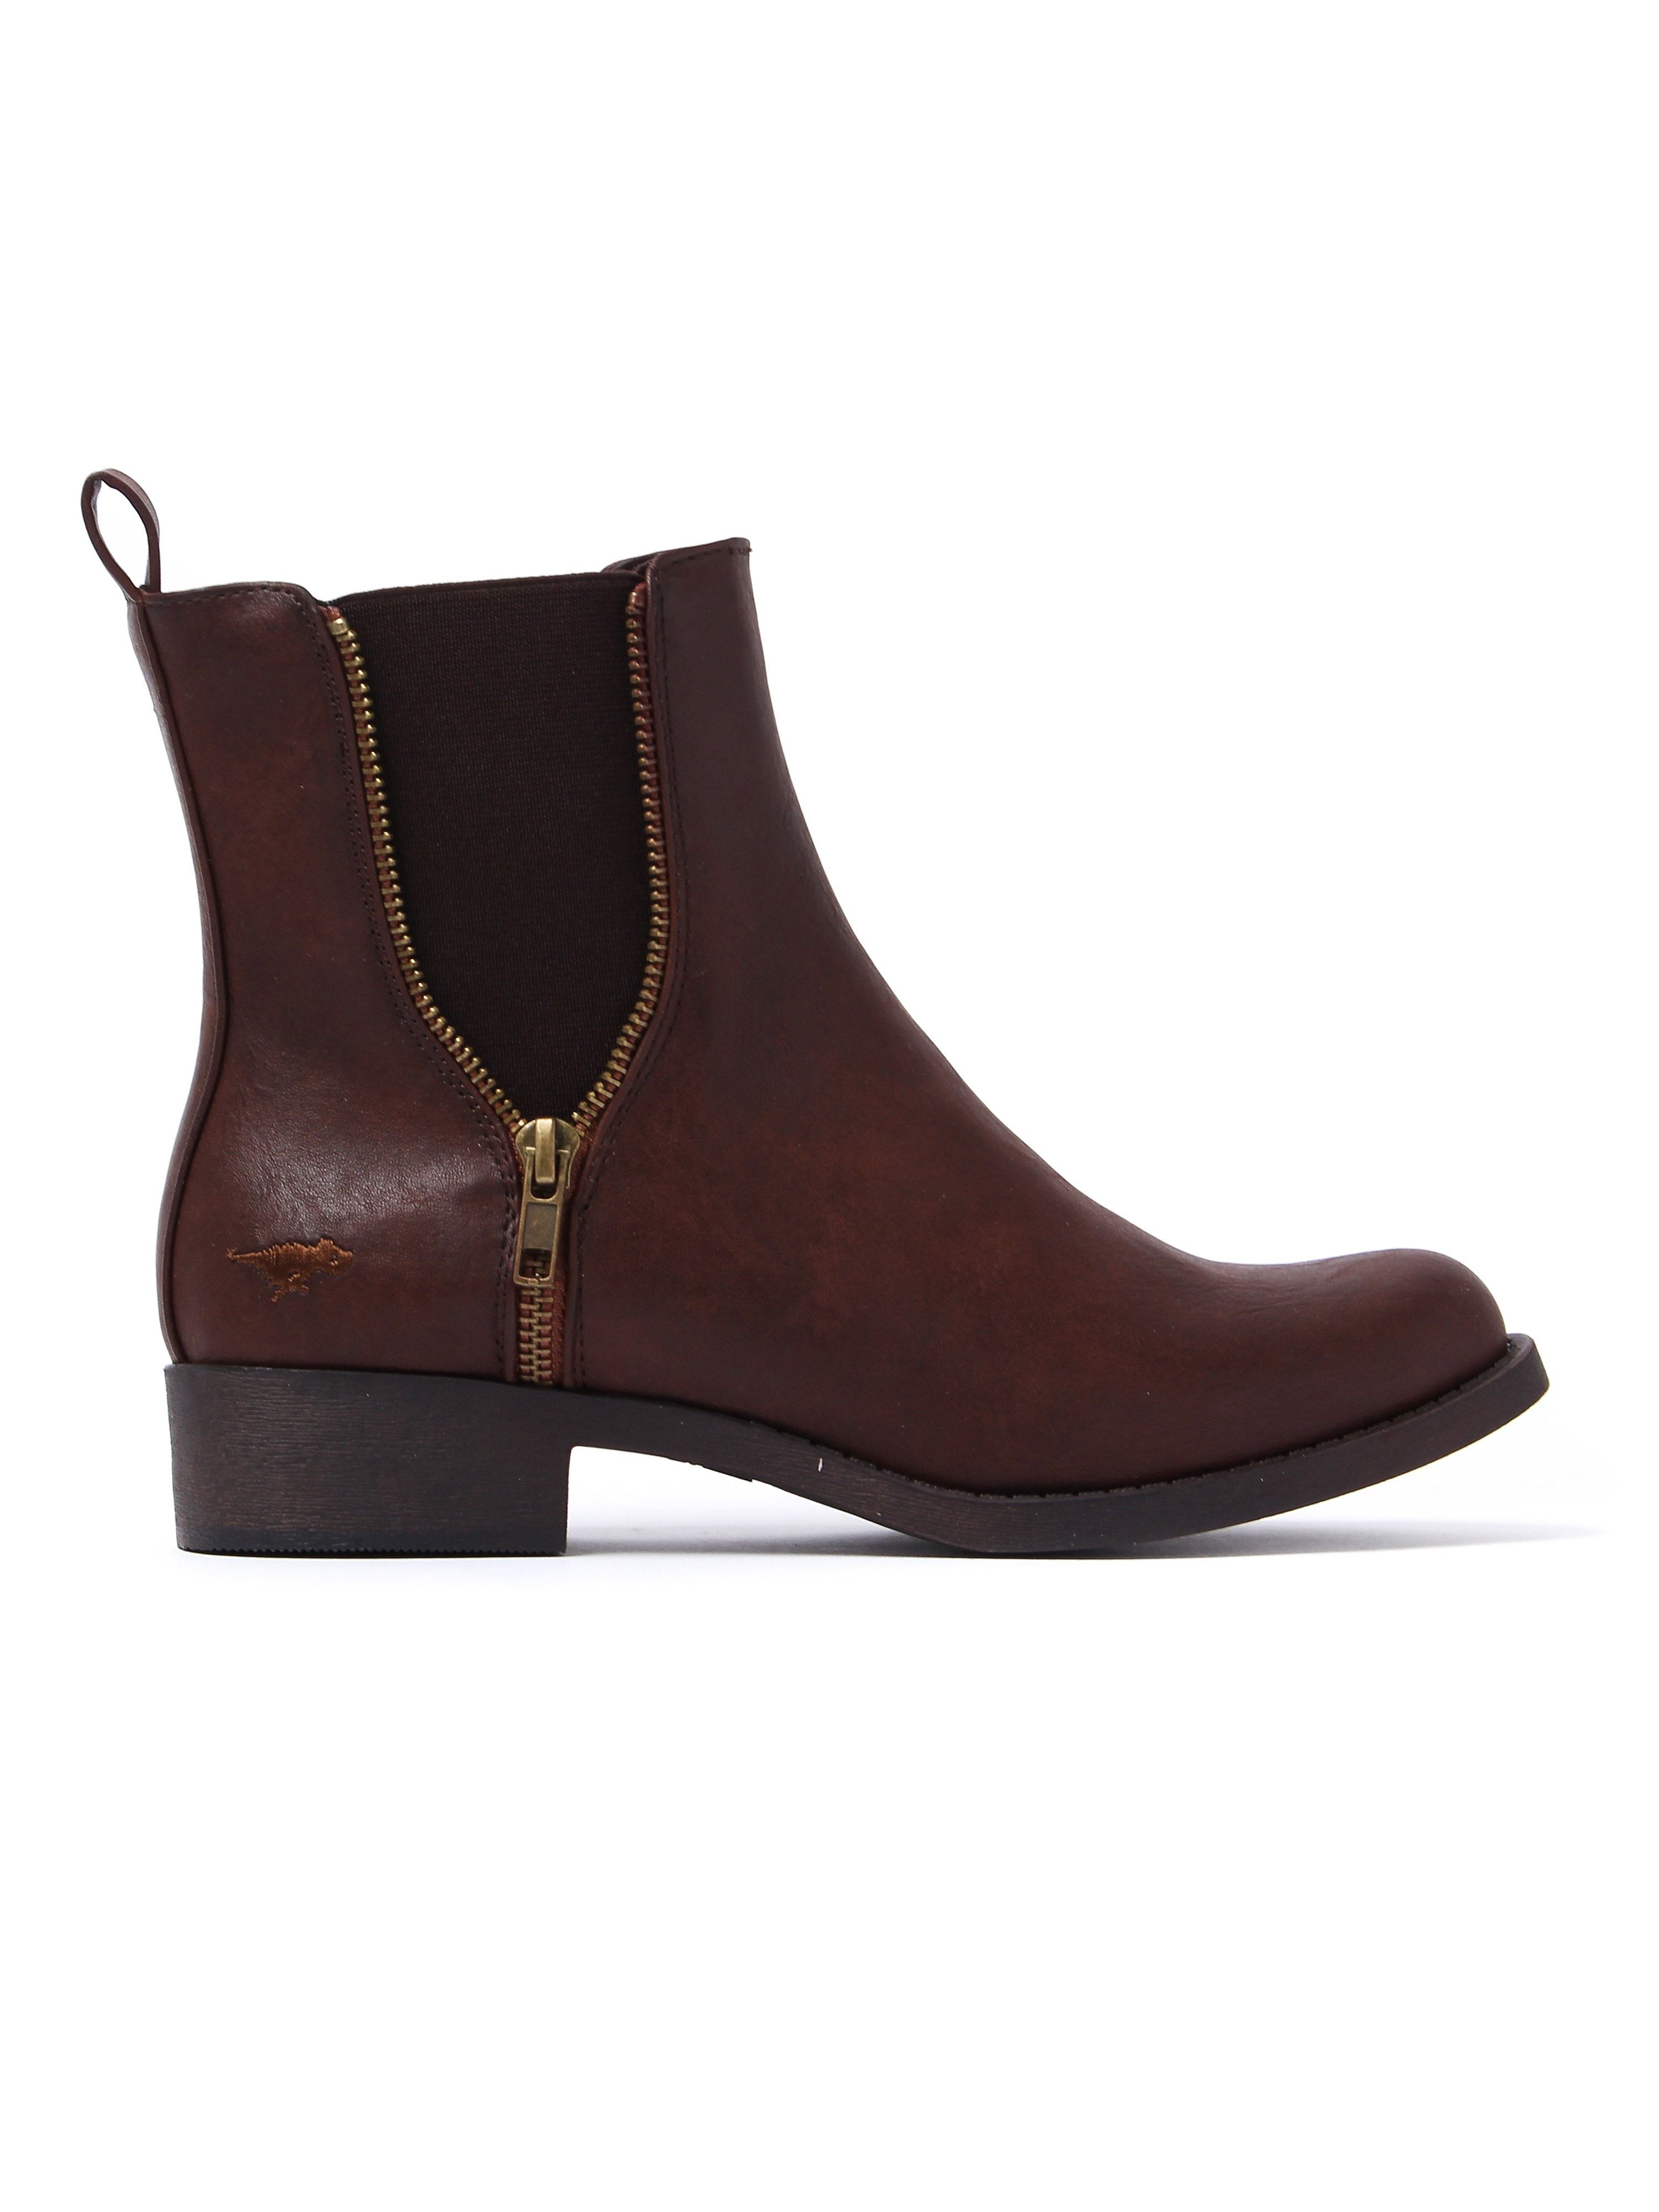 Rocket Dog Women's Camilla Autumn Chelsea Boots - Dark Brown